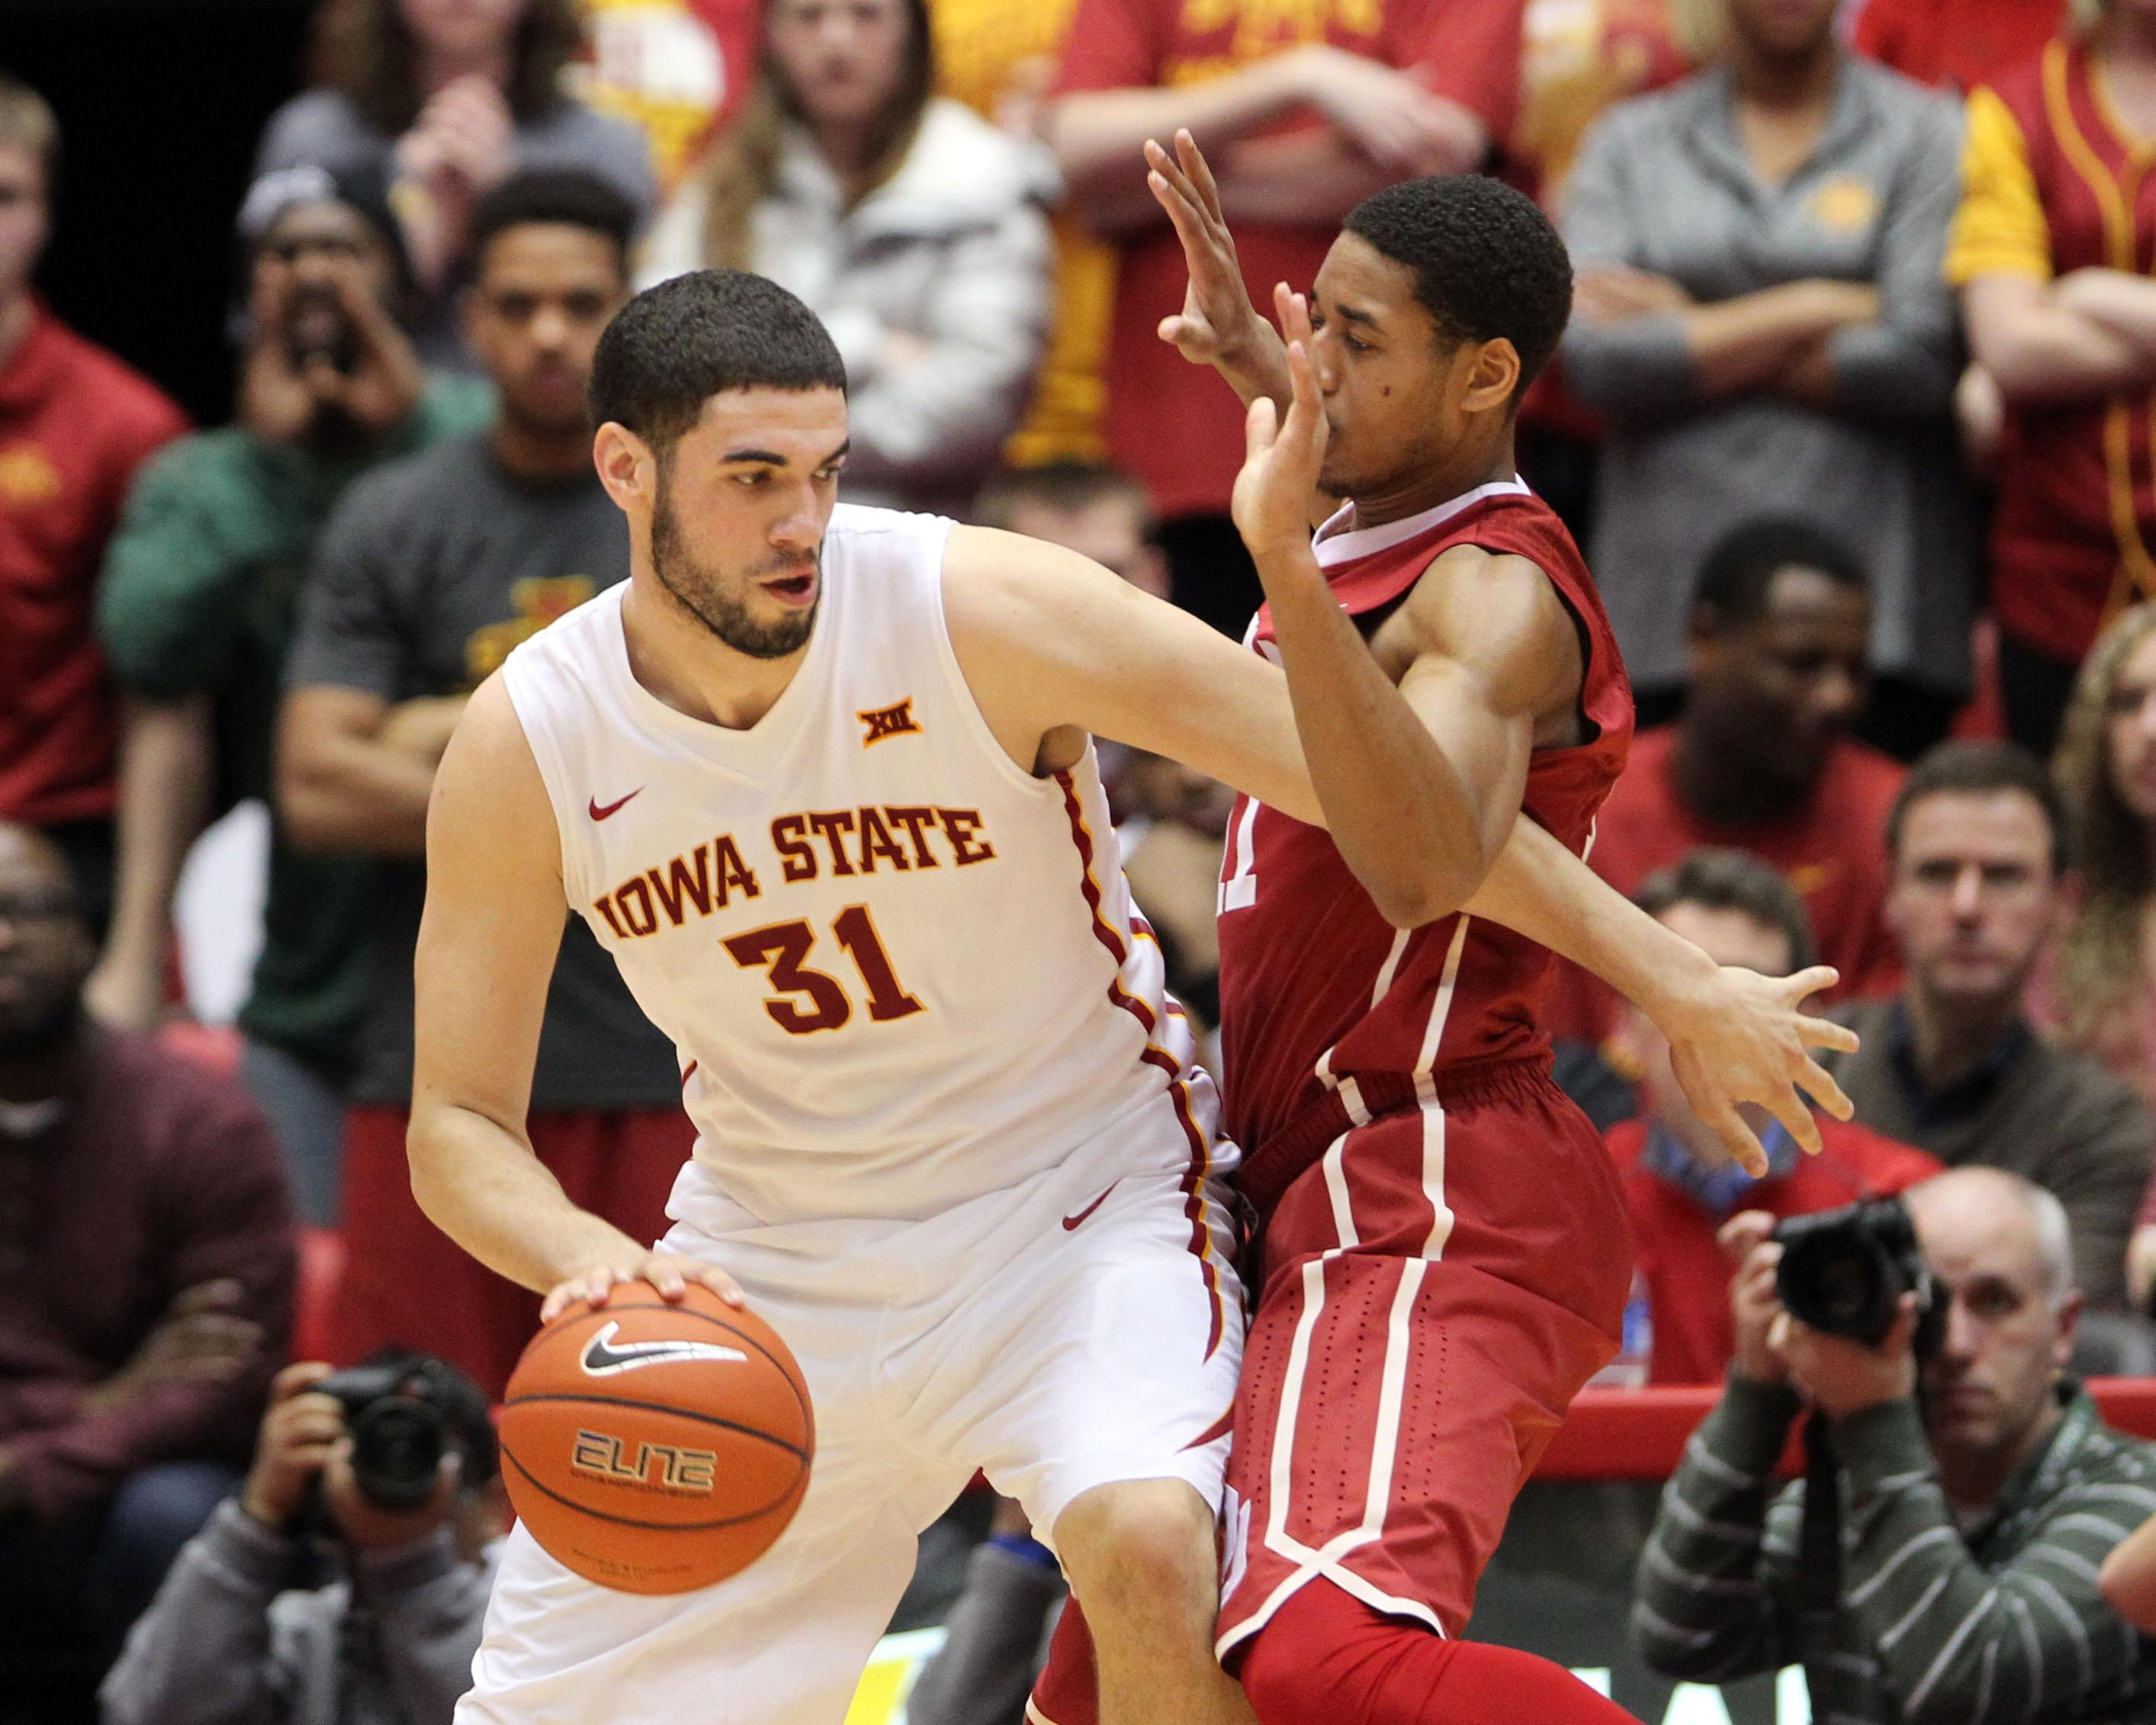 Costly technical foul ignites massive Iowa State comeback